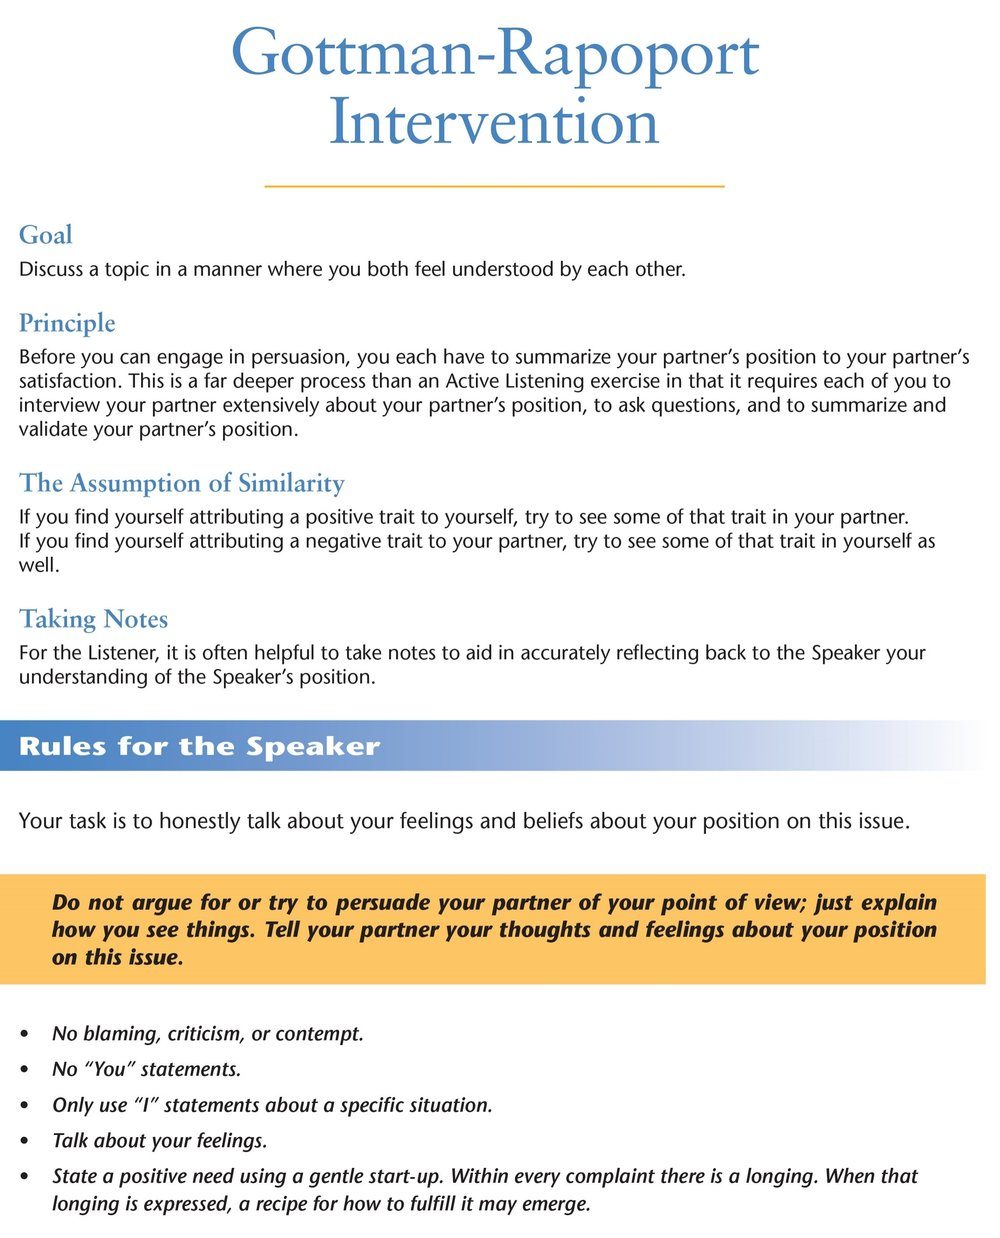 Guidelines for Communicating - Gottman-Rapoport Intervention provides rules for the speaker and listener when discussing a topic. Click on image for PDF.